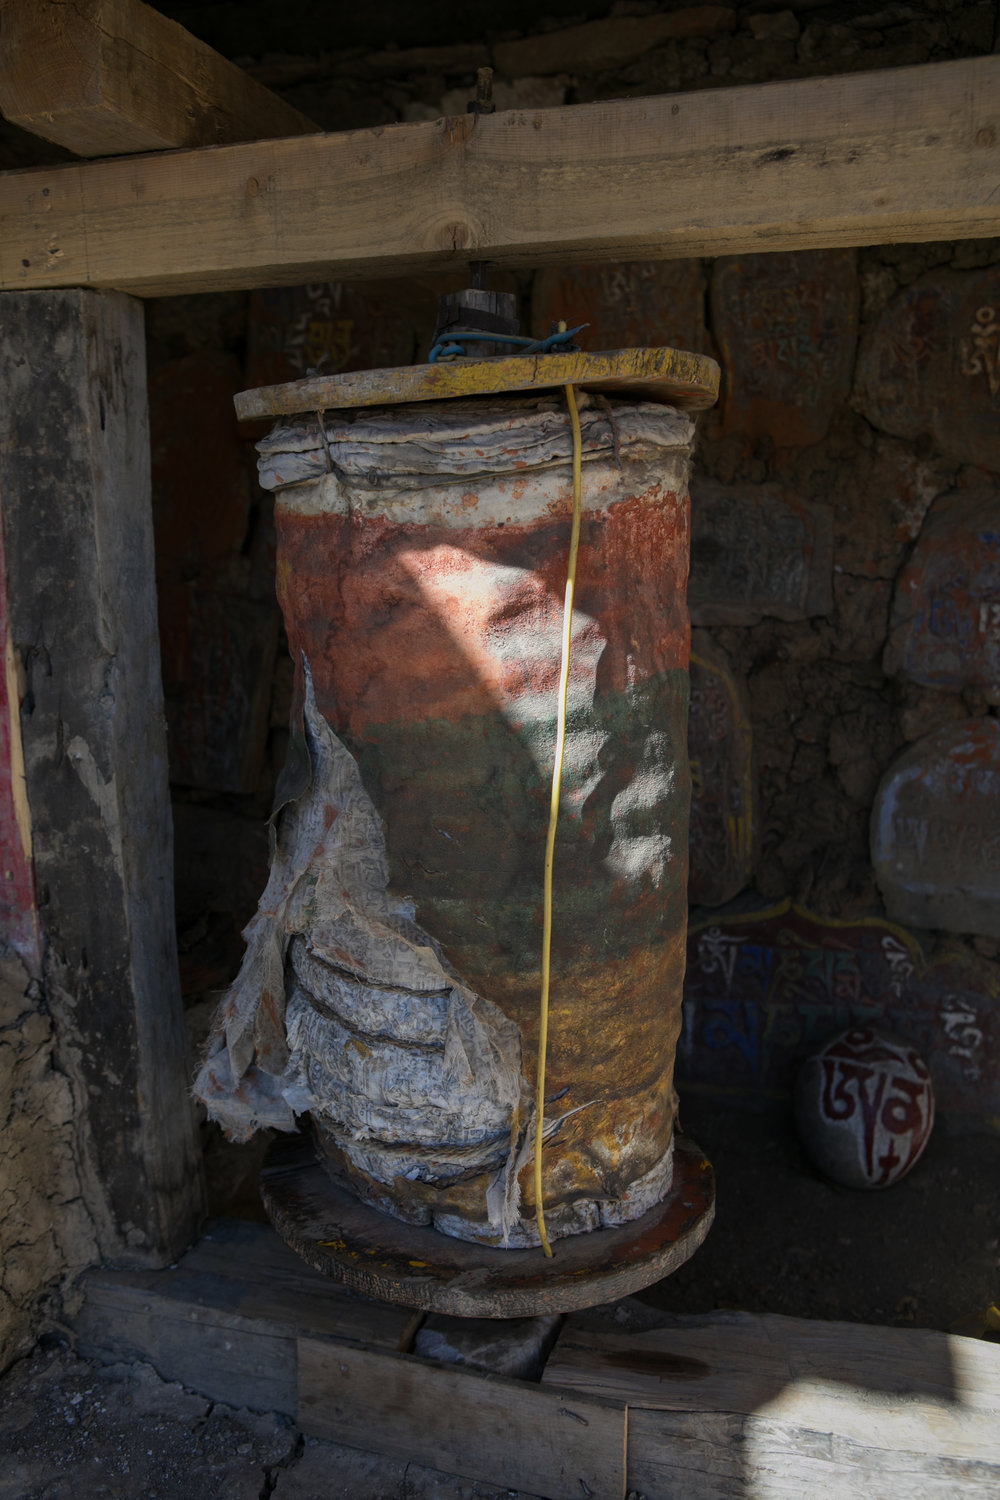 An ancient prayer wheel that is split. You can see the rounds of cloth that fill the inside of a prayer wheel with prayers written across the fabric.